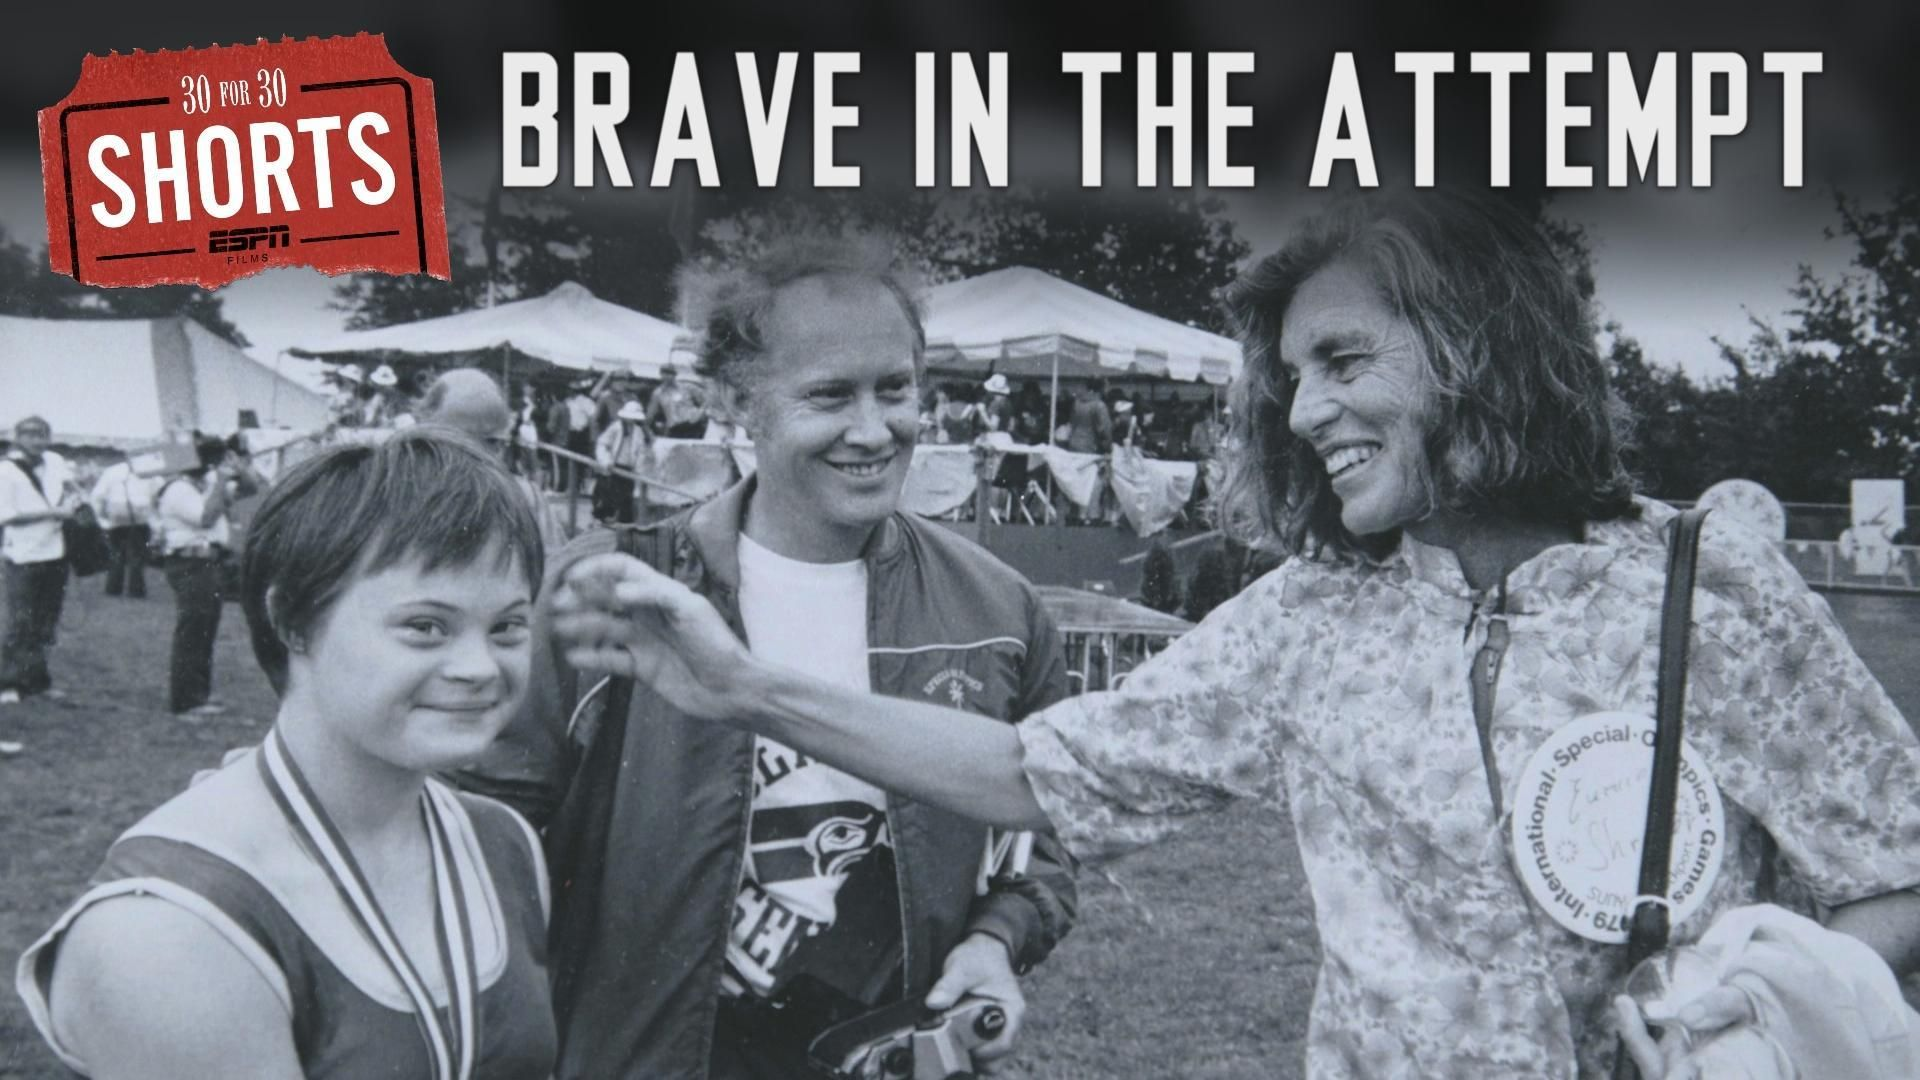 30 for 30 Shorts: Brave in the Attempt